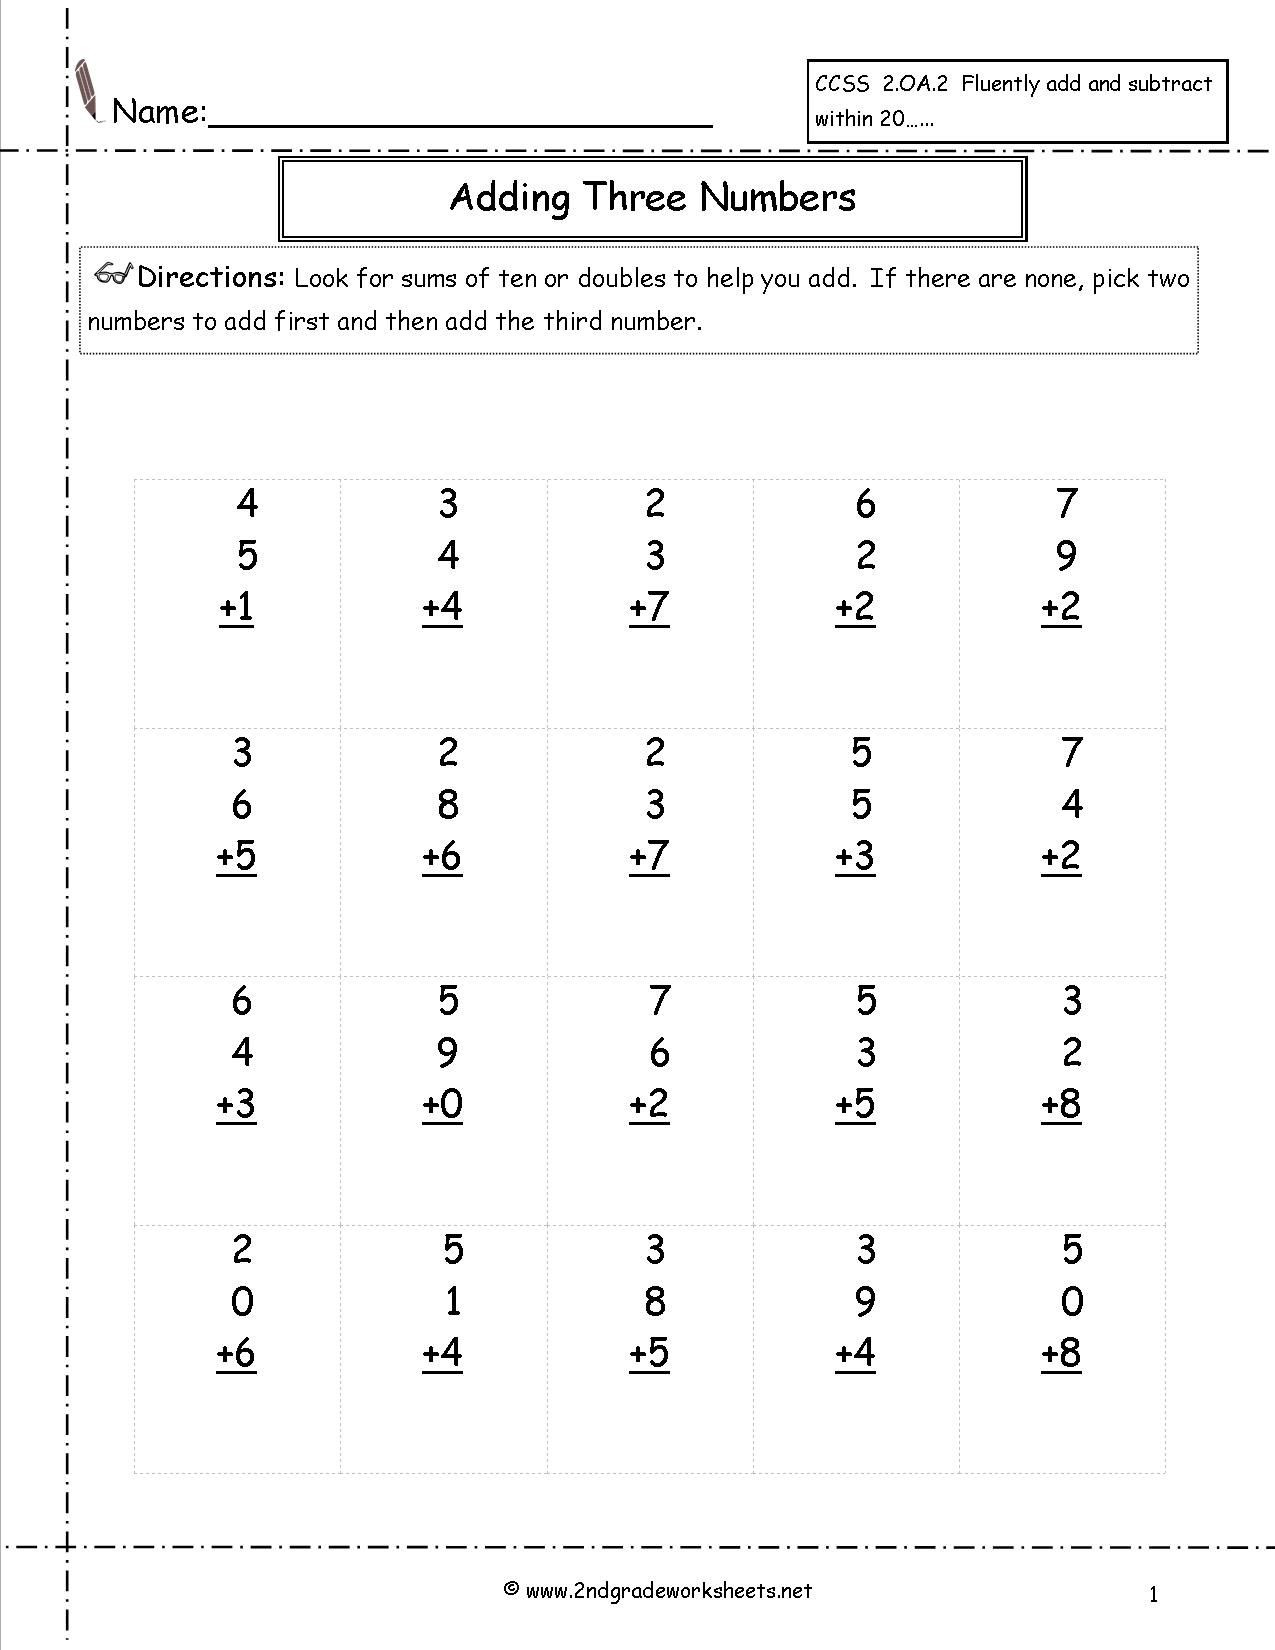 Adding Three Numbers Worksheets Free Math Worksheets and Printouts